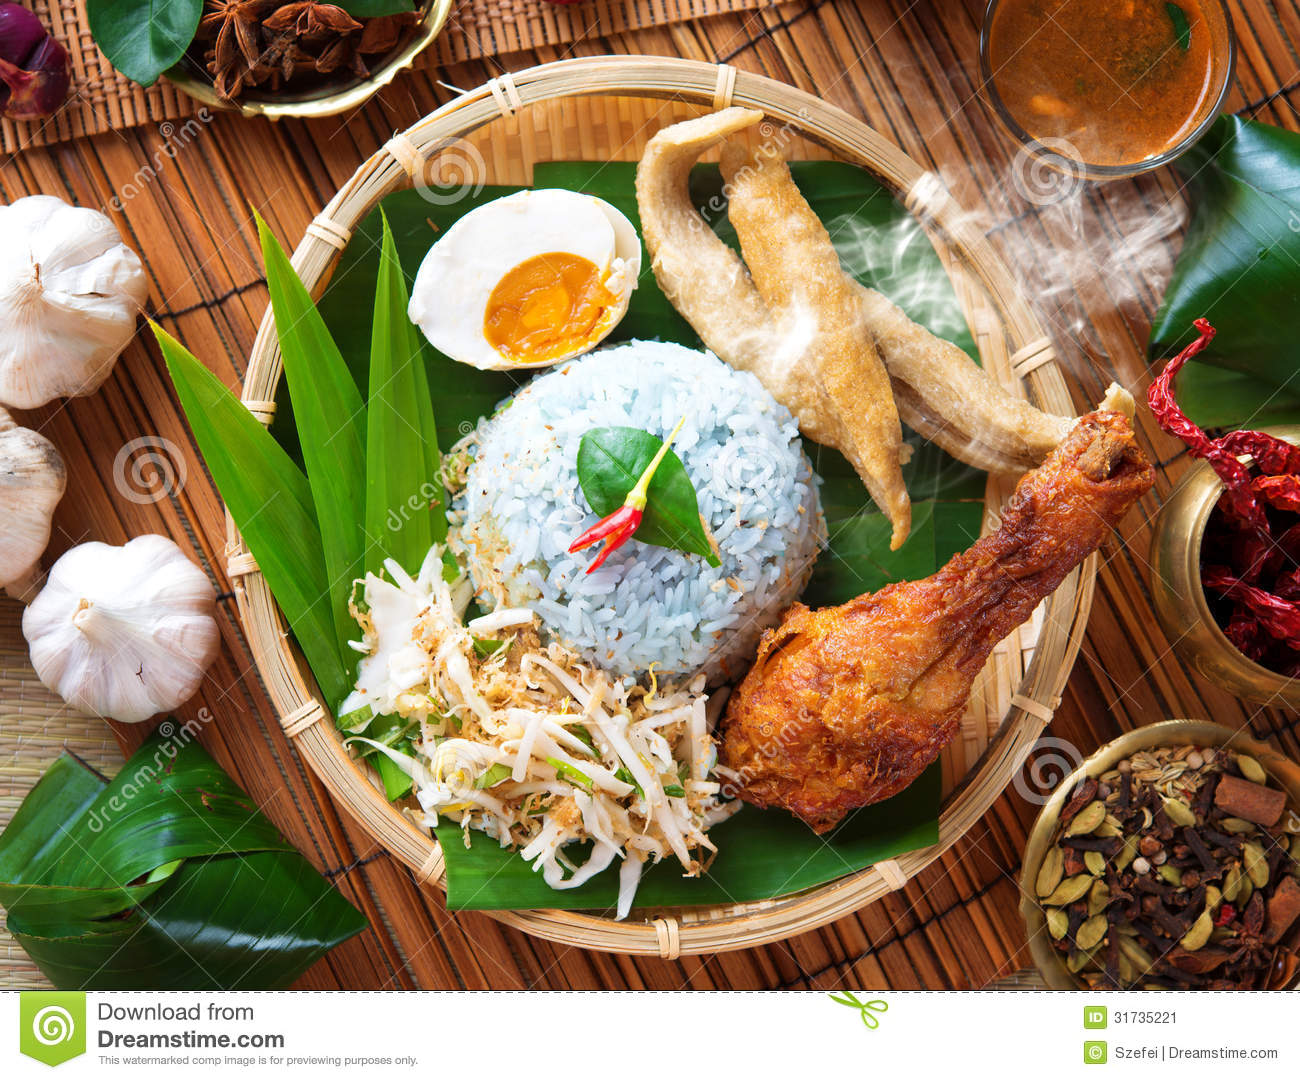 Nasi kerabu is a type of nasi ulam, popular Malay rice dish. Blue ...